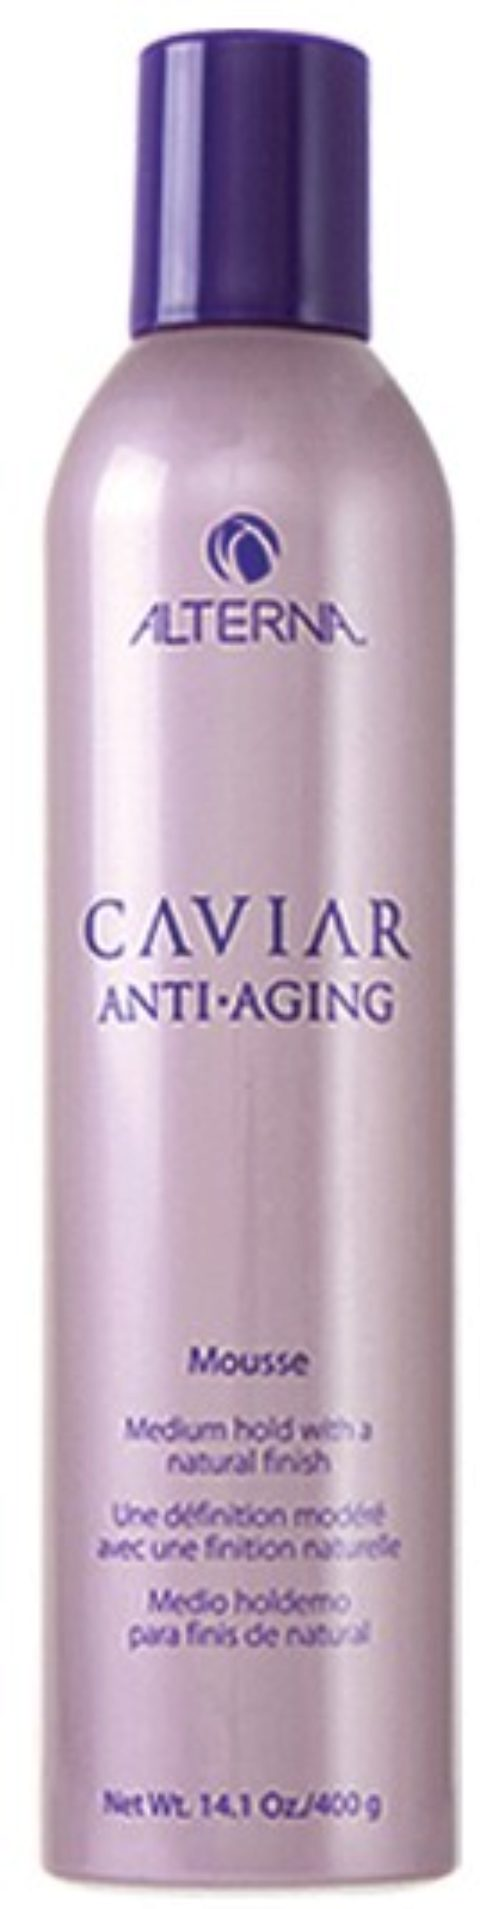 Alterna Caviar Anti aging Amplifying mousse 400gr